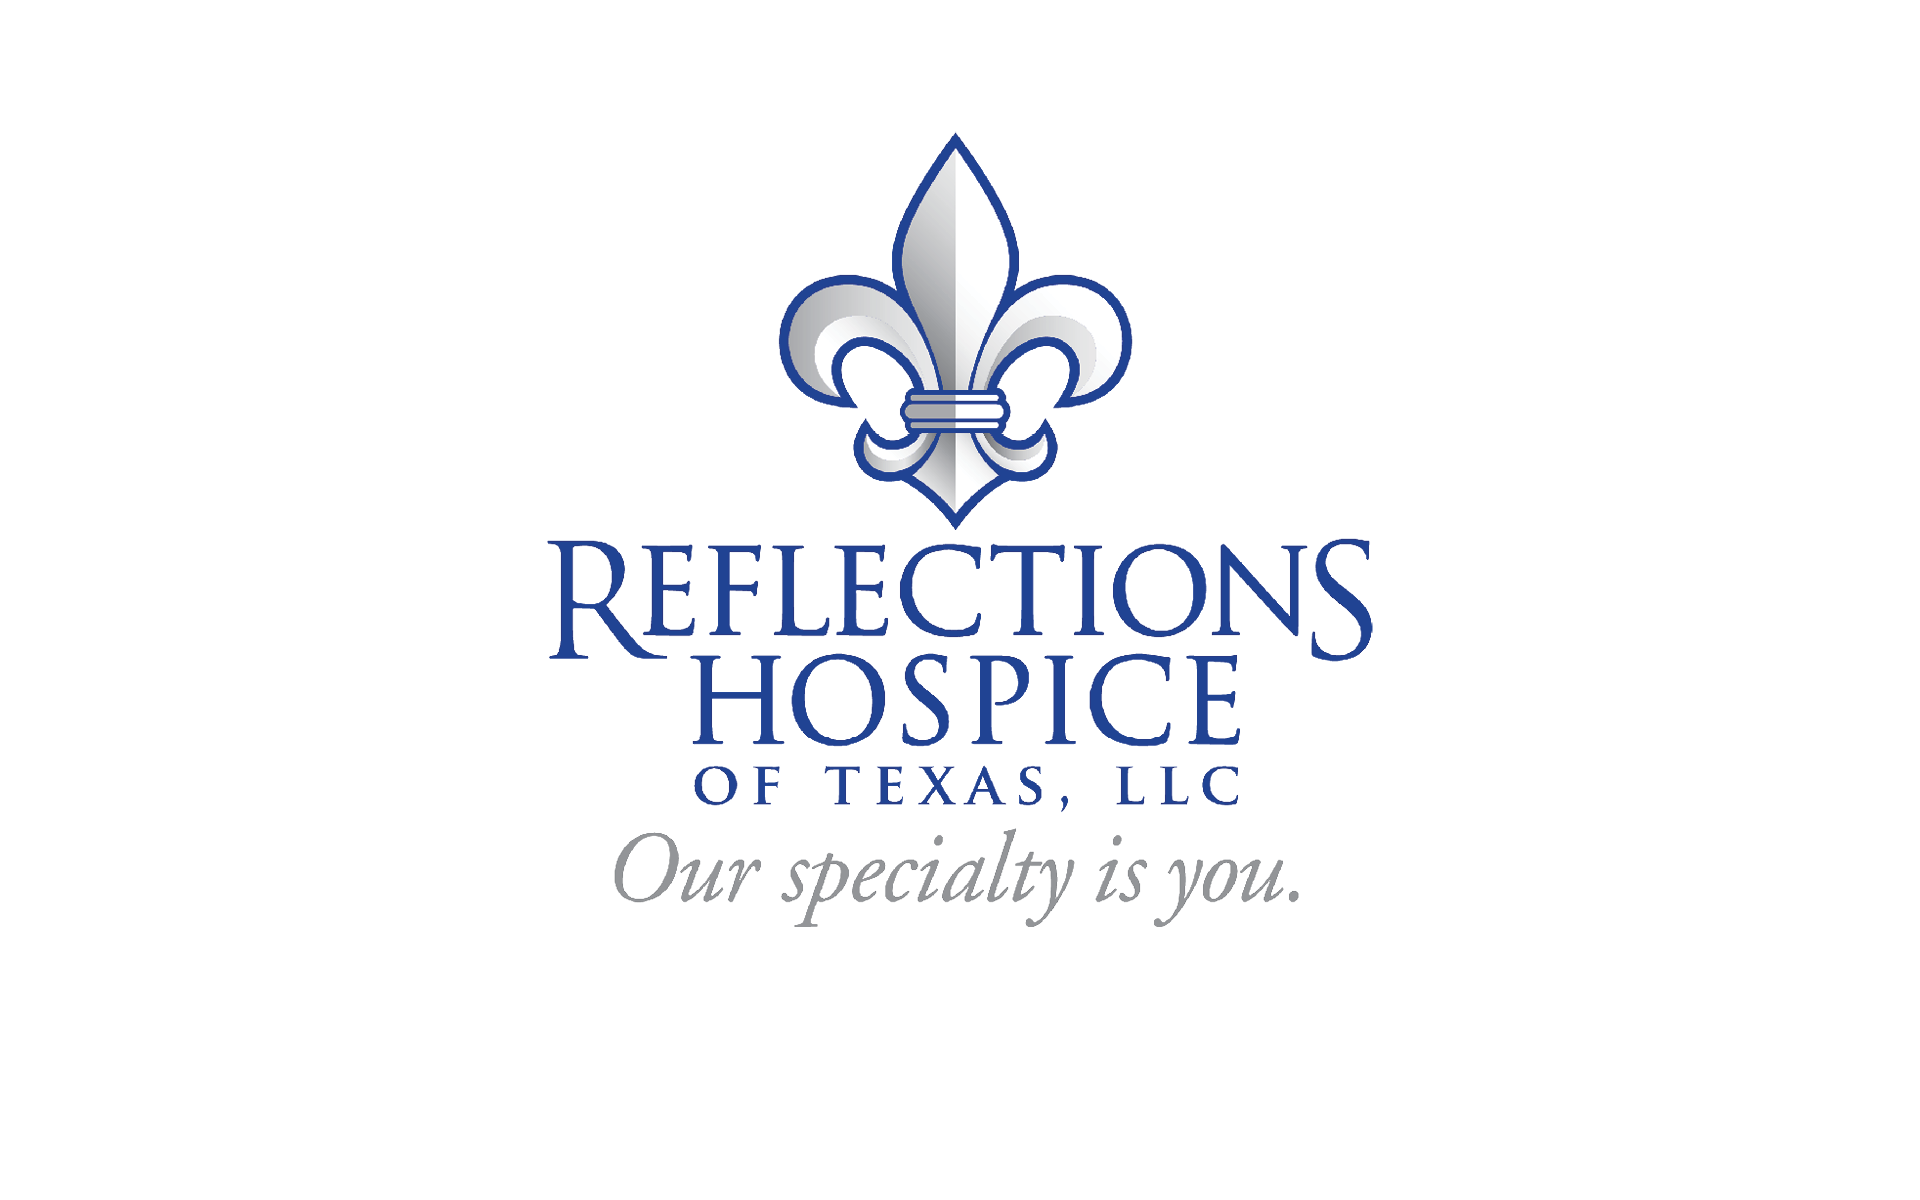 REFLECTIONS HOSPICE OF EAST TEXAS